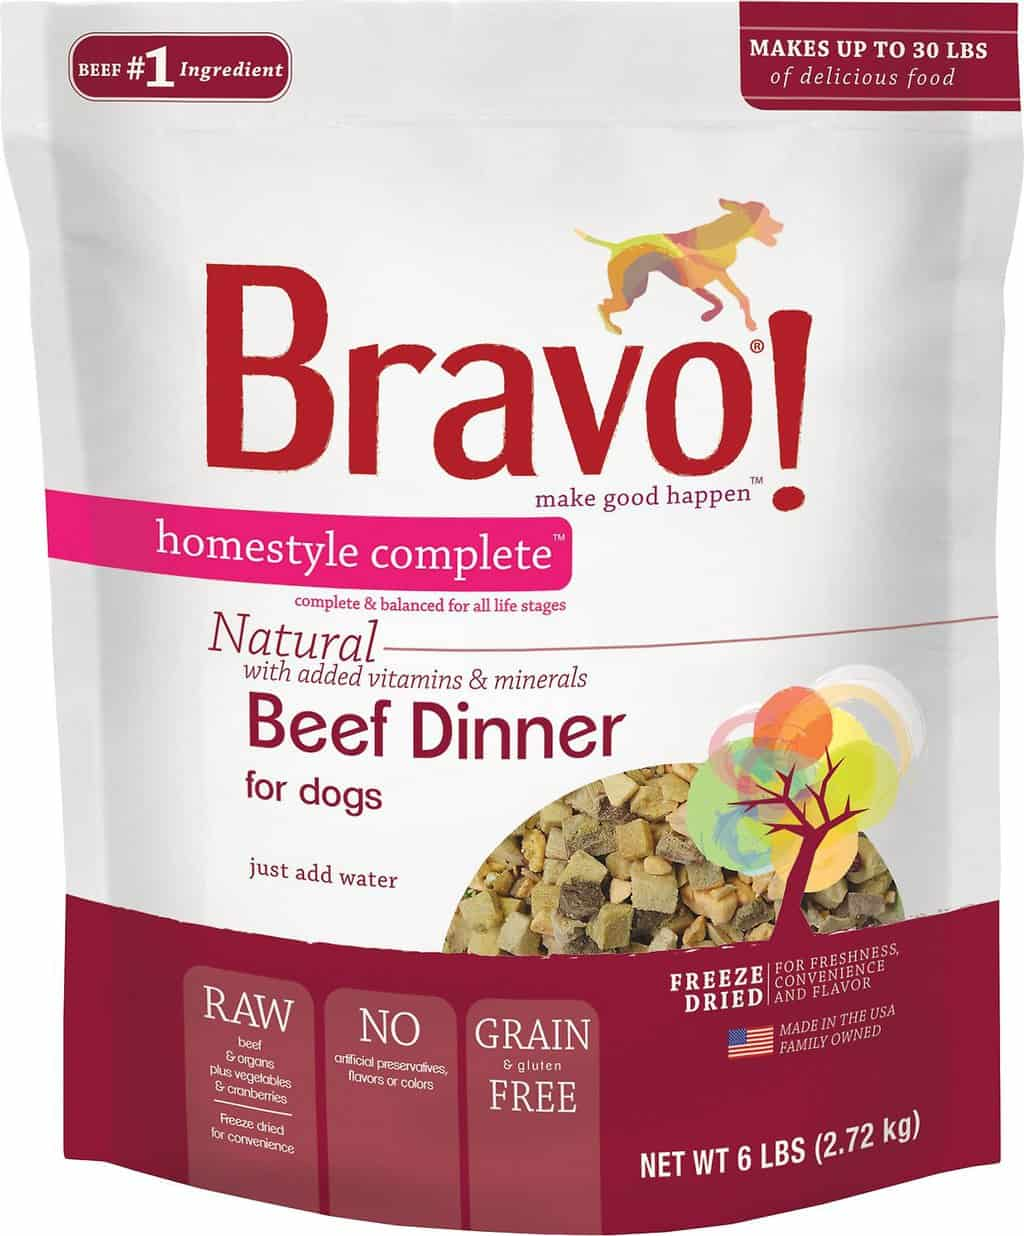 Bravo Dog Food Review 2021: Best Raw Pet Food? 11